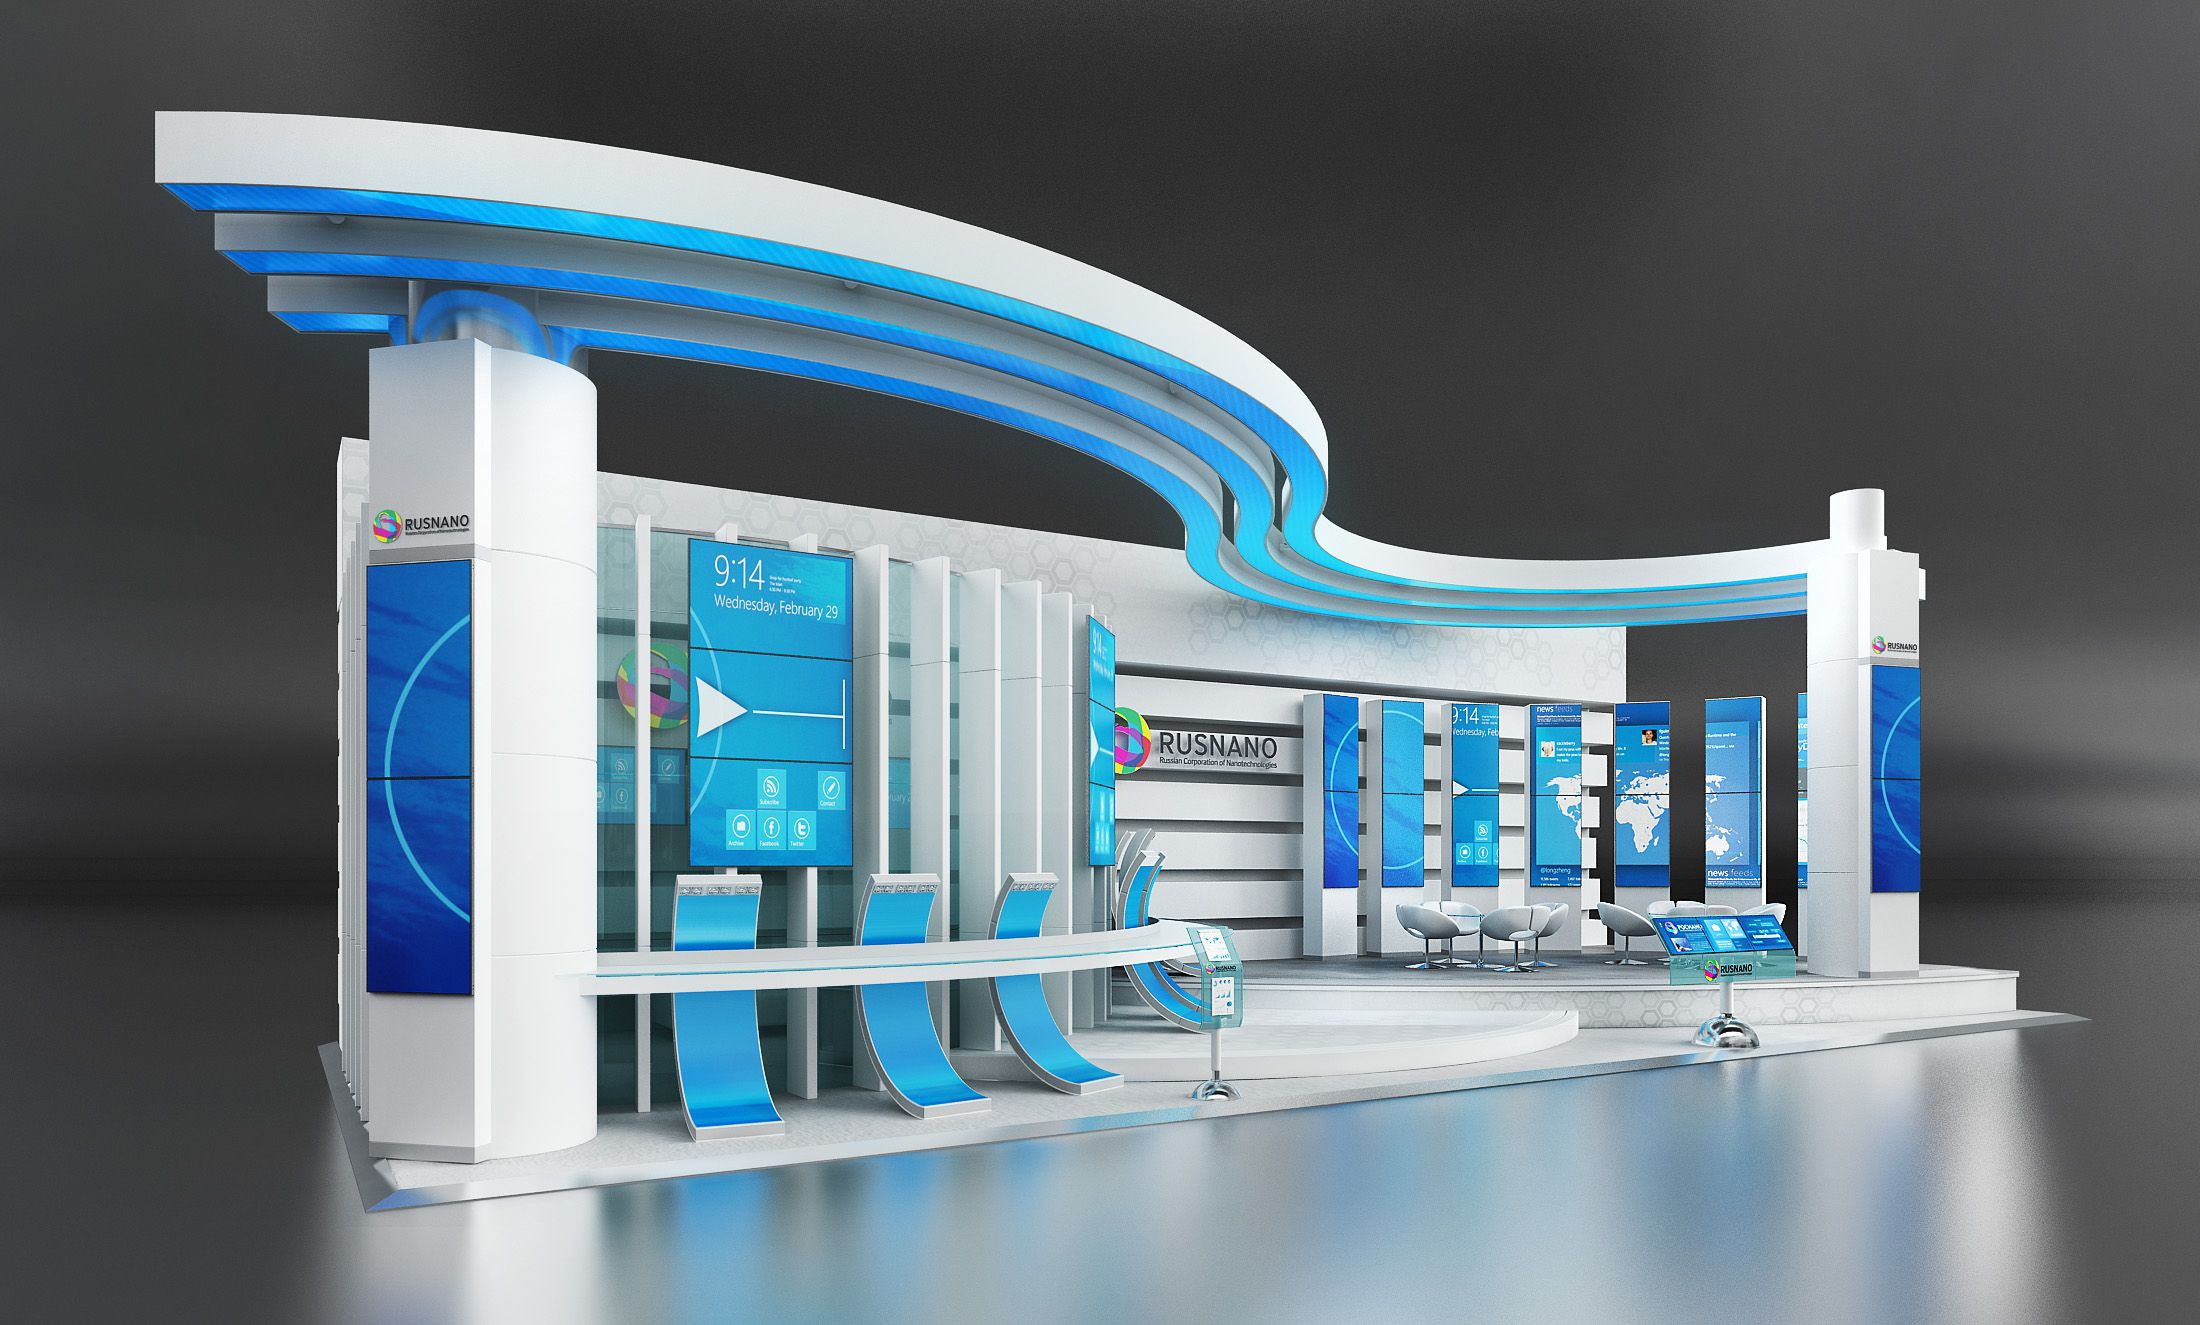 Exhibition Stand Builders Es : One of the design concept for rusnano exhibition stand